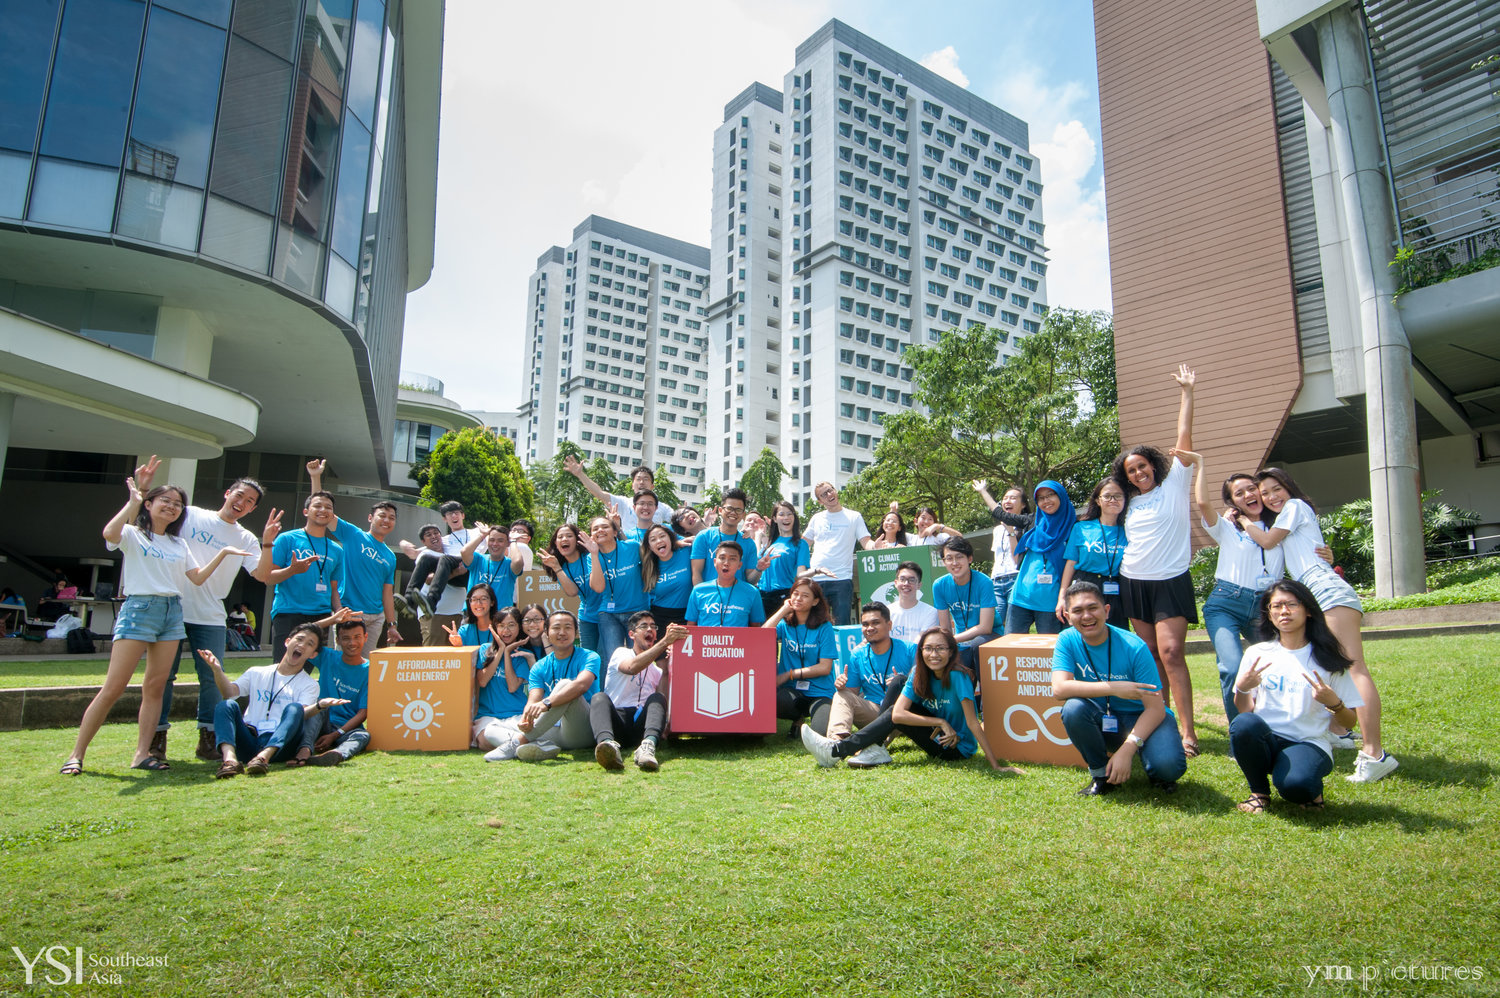 Create Your Impact Startup — YSI Southeast Asia